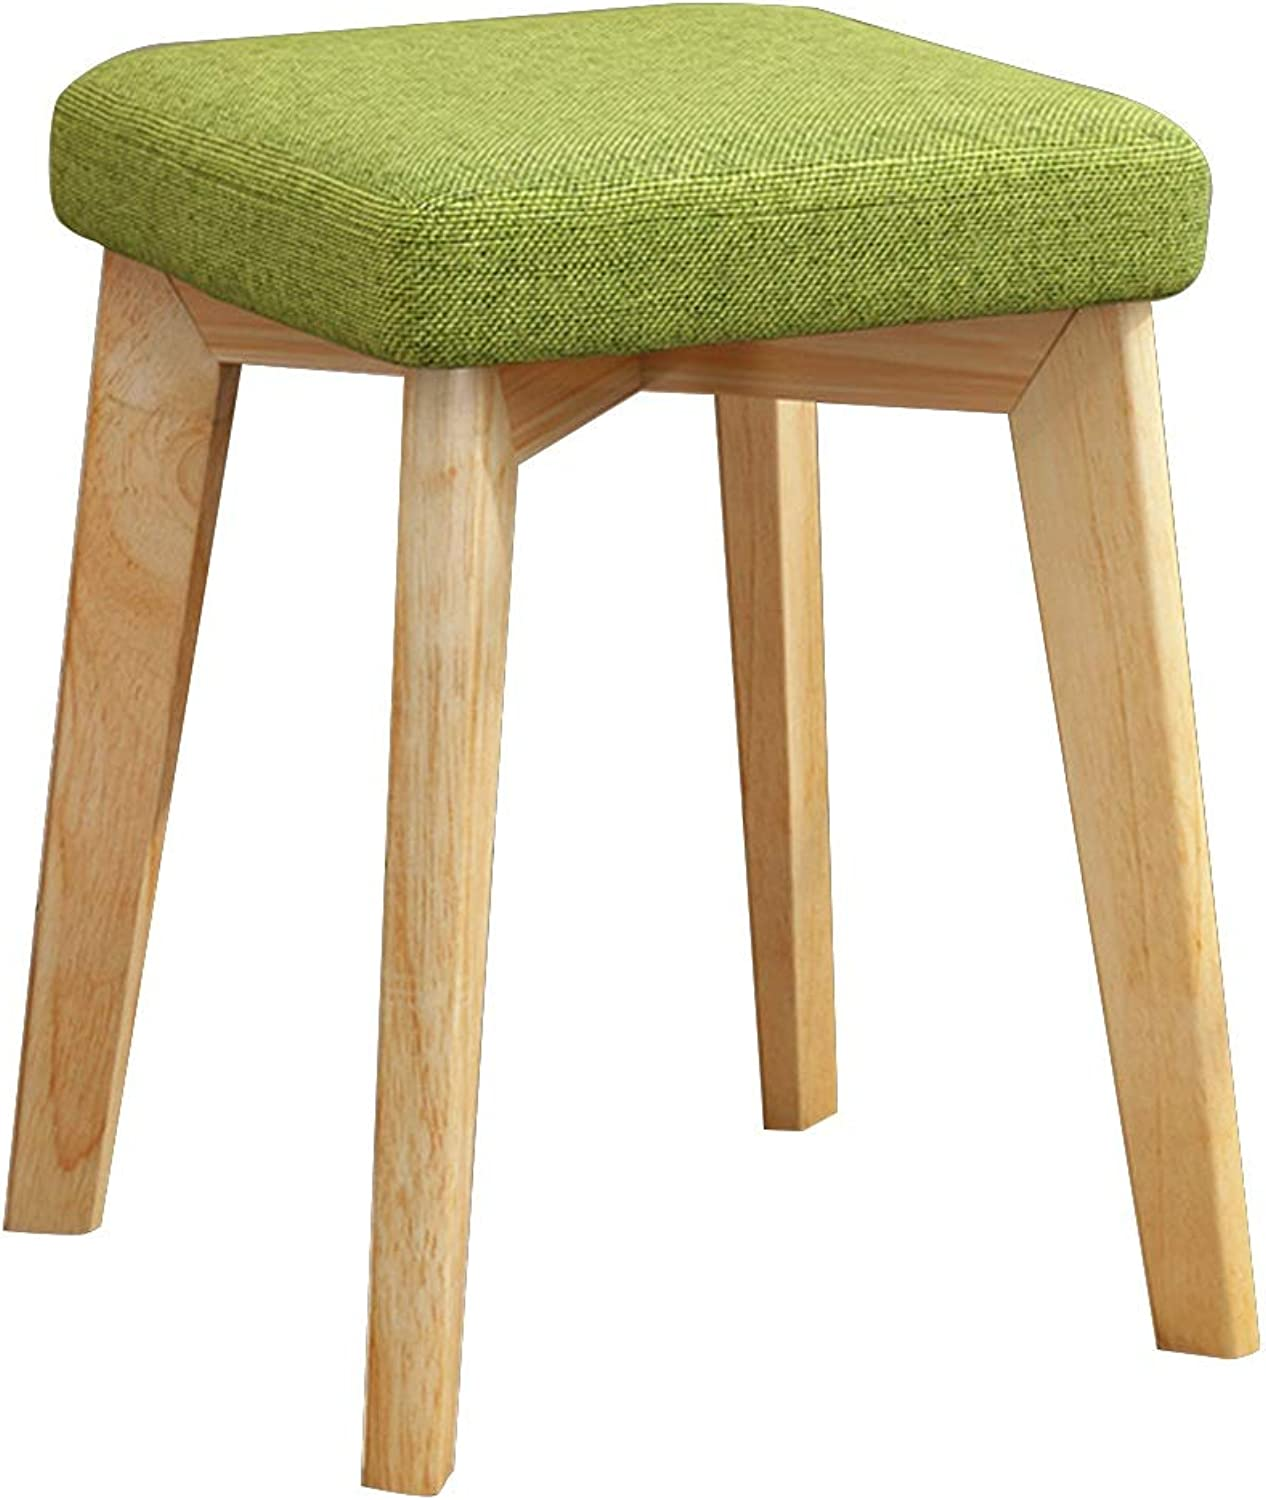 MEIDUO Chairs Solid Wood Low Chair Creative Modern Simple Stool with High Elastic Sponge and Felt Pad Home Bedroom Stool 32  32  45cm (color   Grass Green)